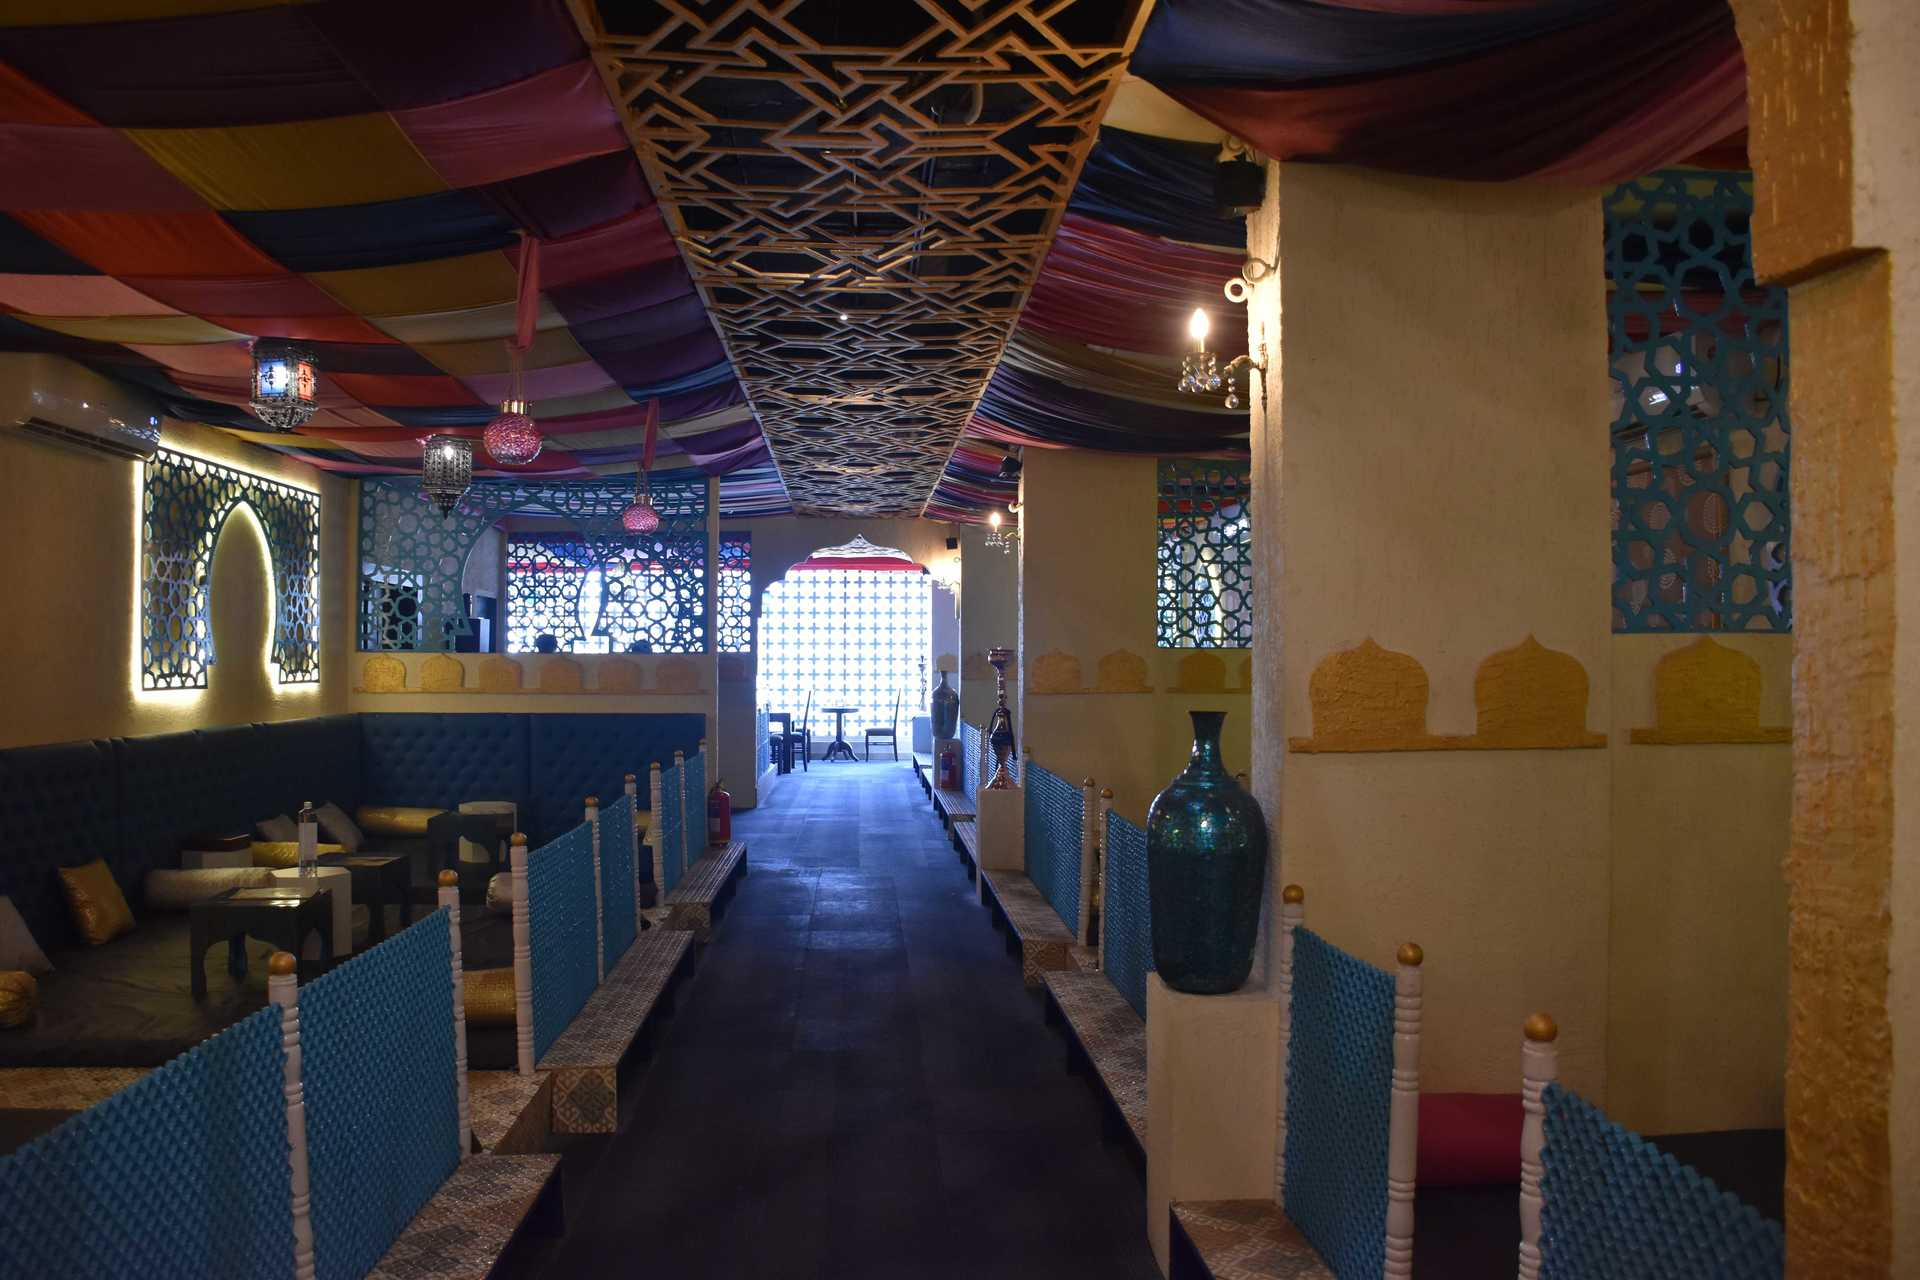 With A Beautiful Arabian Setting, This Place Serves Amazing Arabian Cuisine image